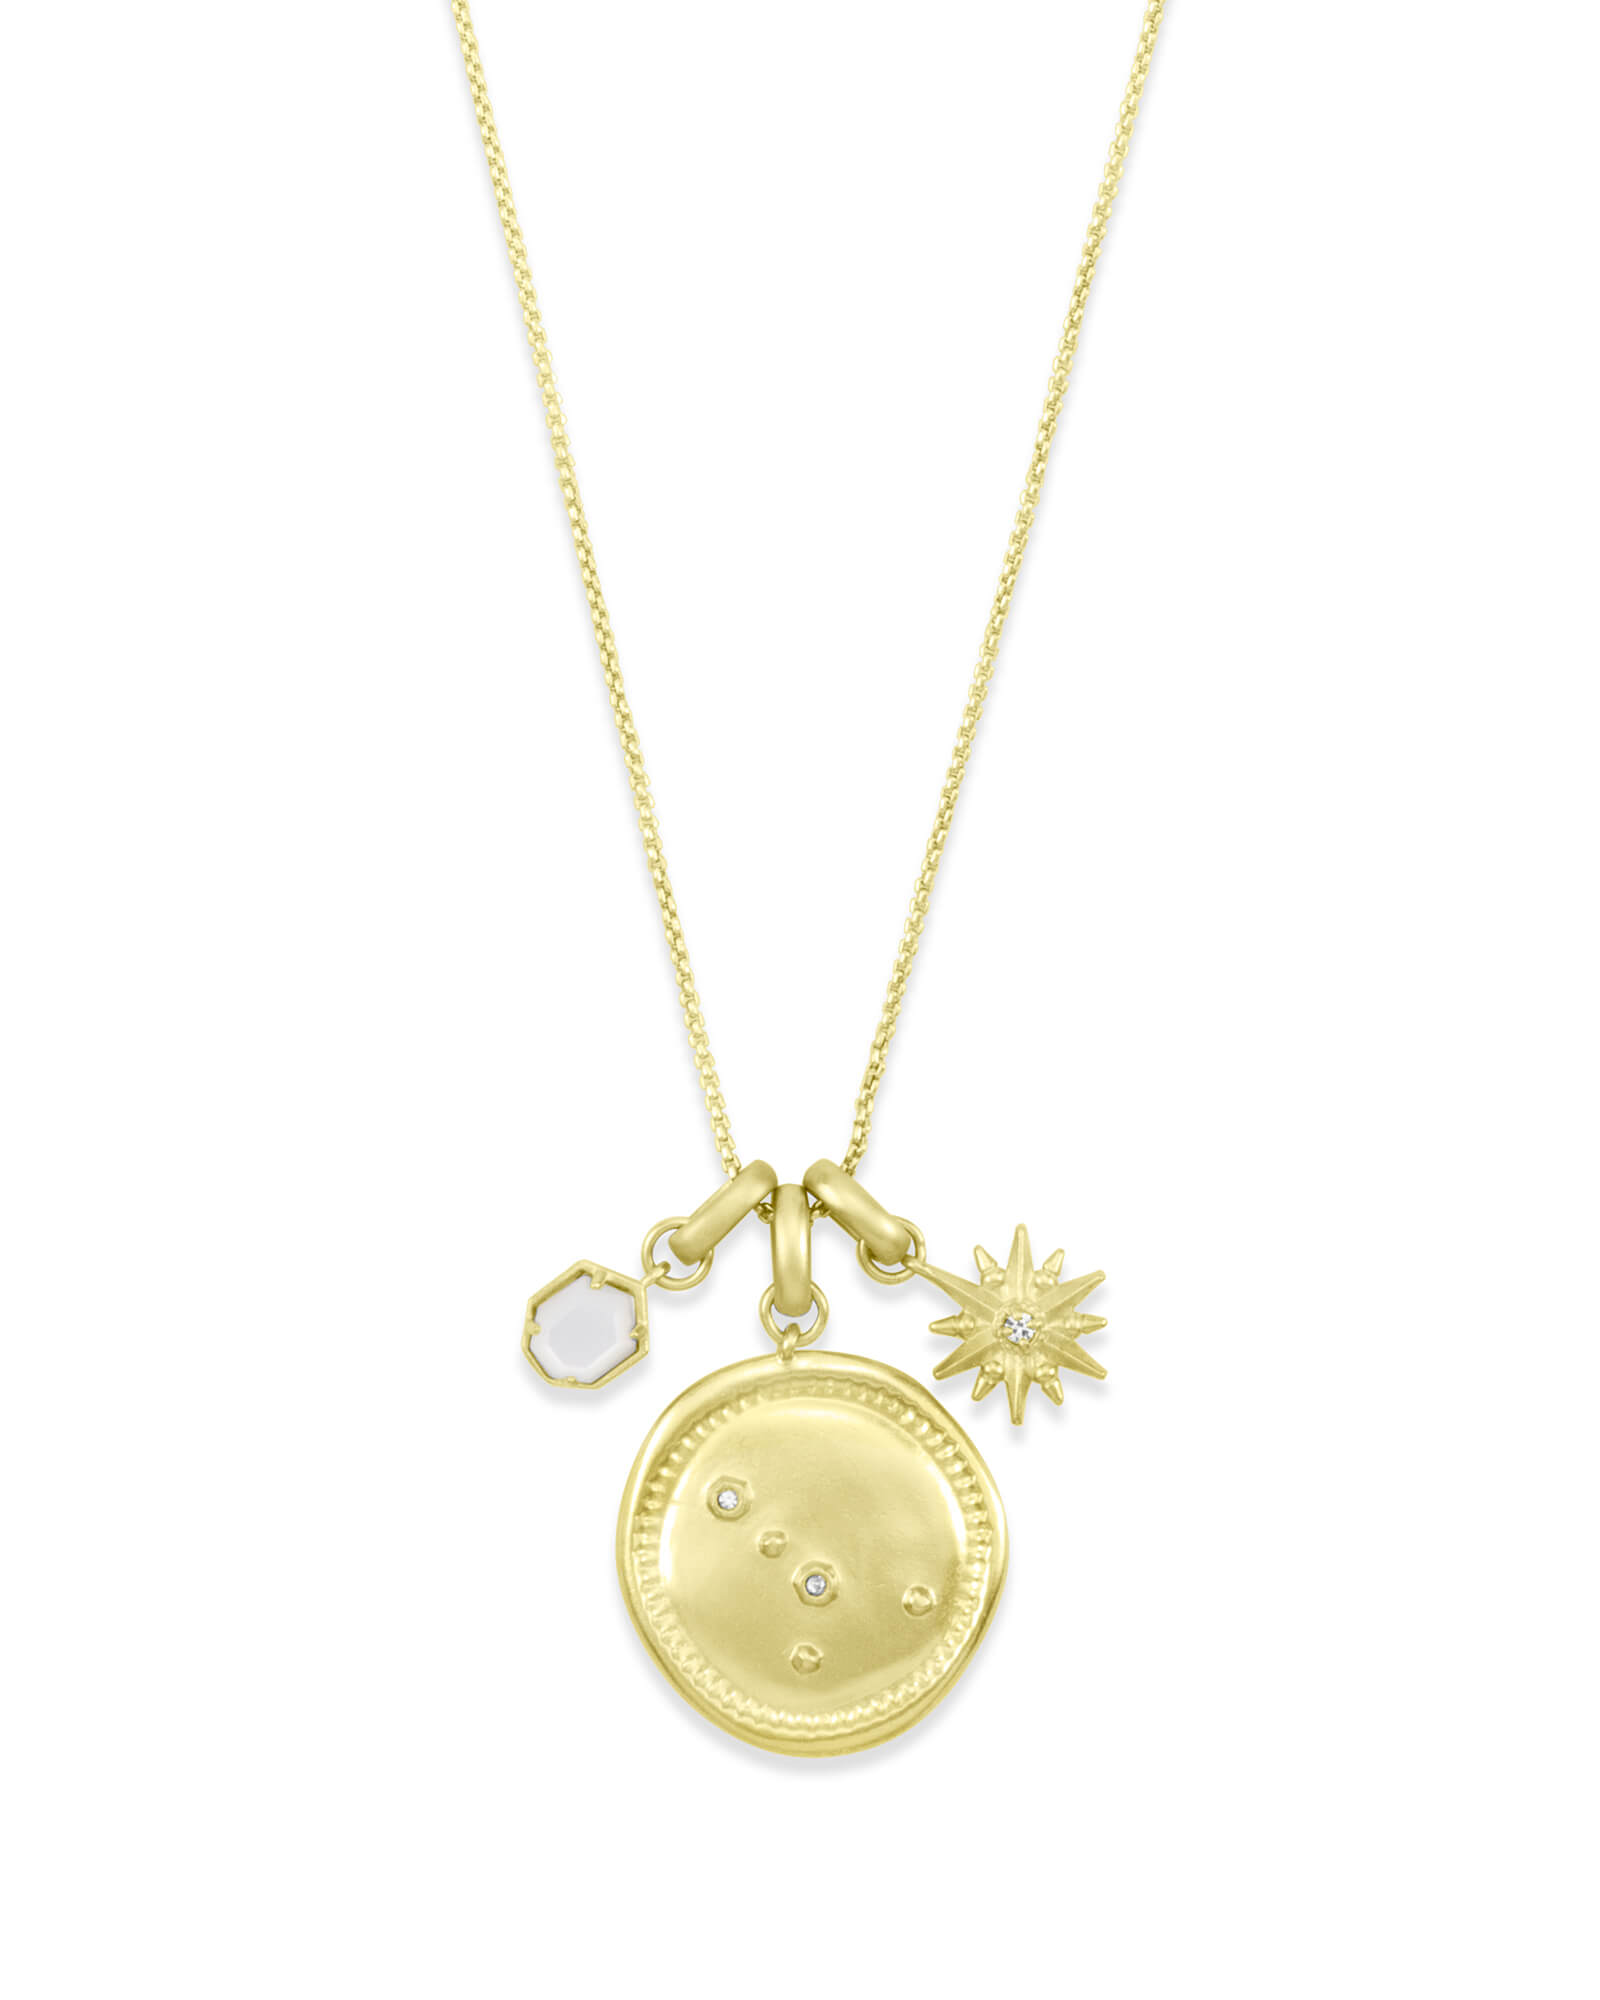 June Cancer Charm Necklace Set in Gold